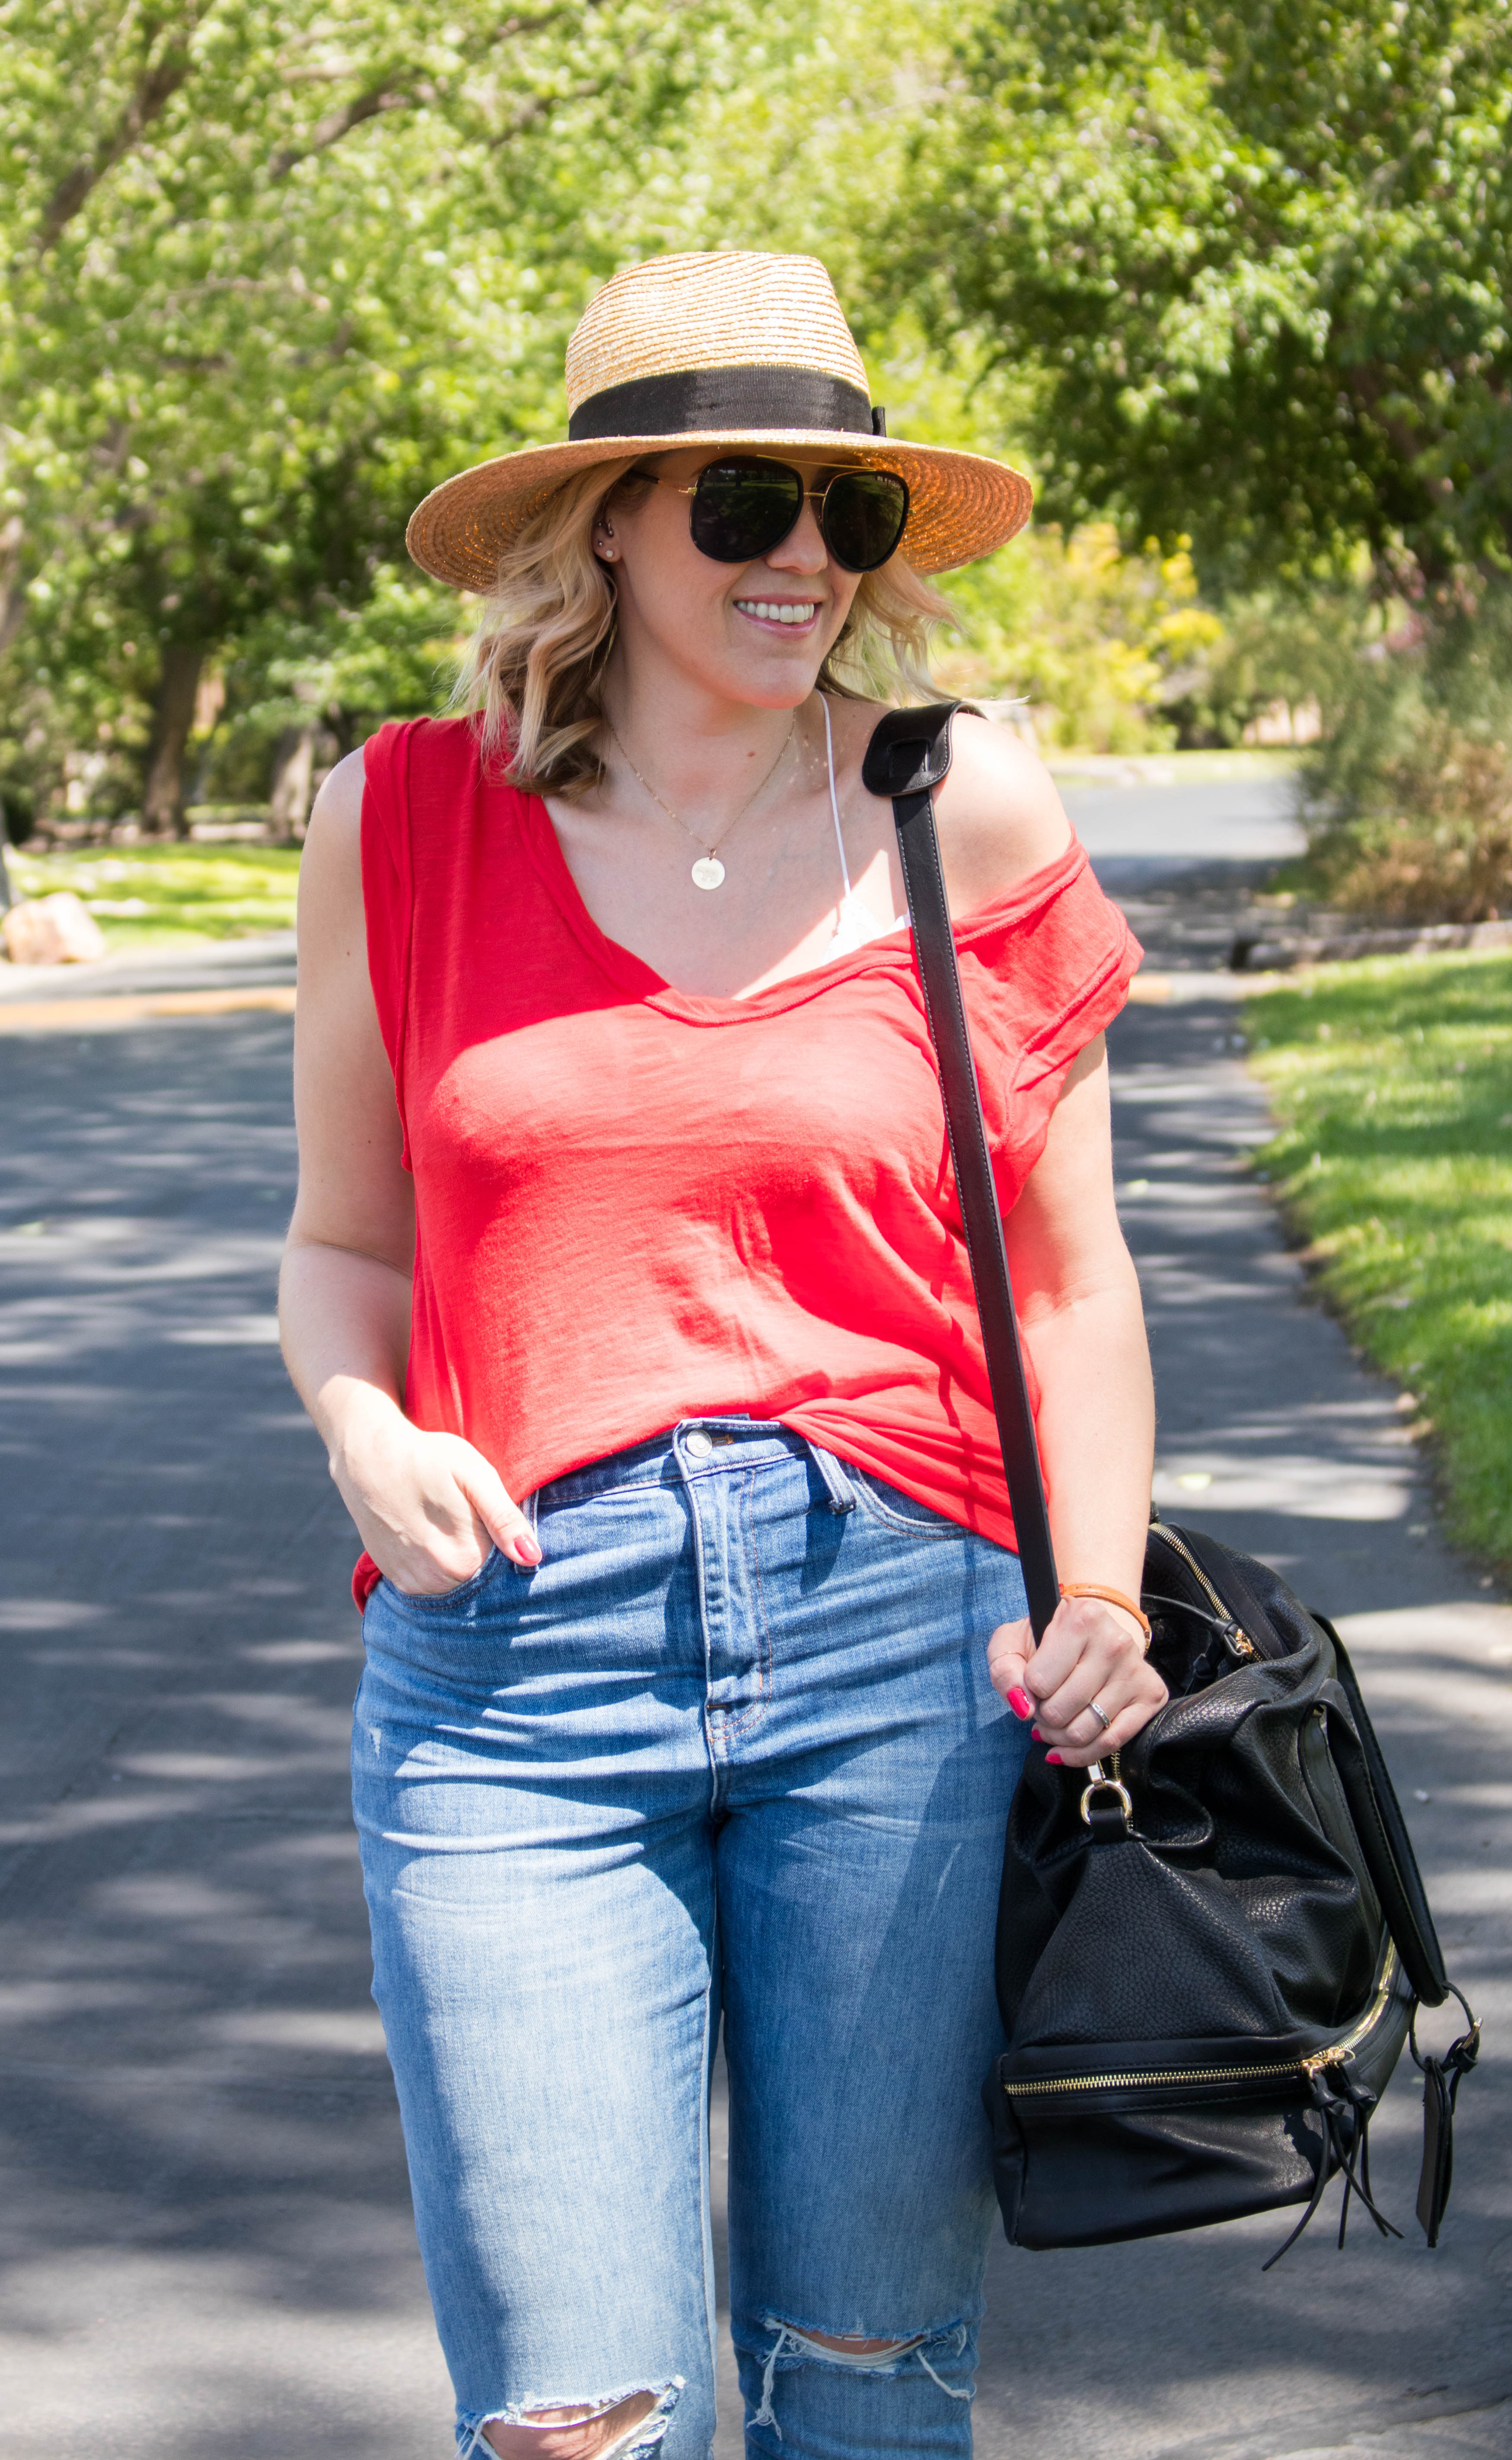 free people top with bralette #freepeople #bohostyle #Panamahat #summeroutfit